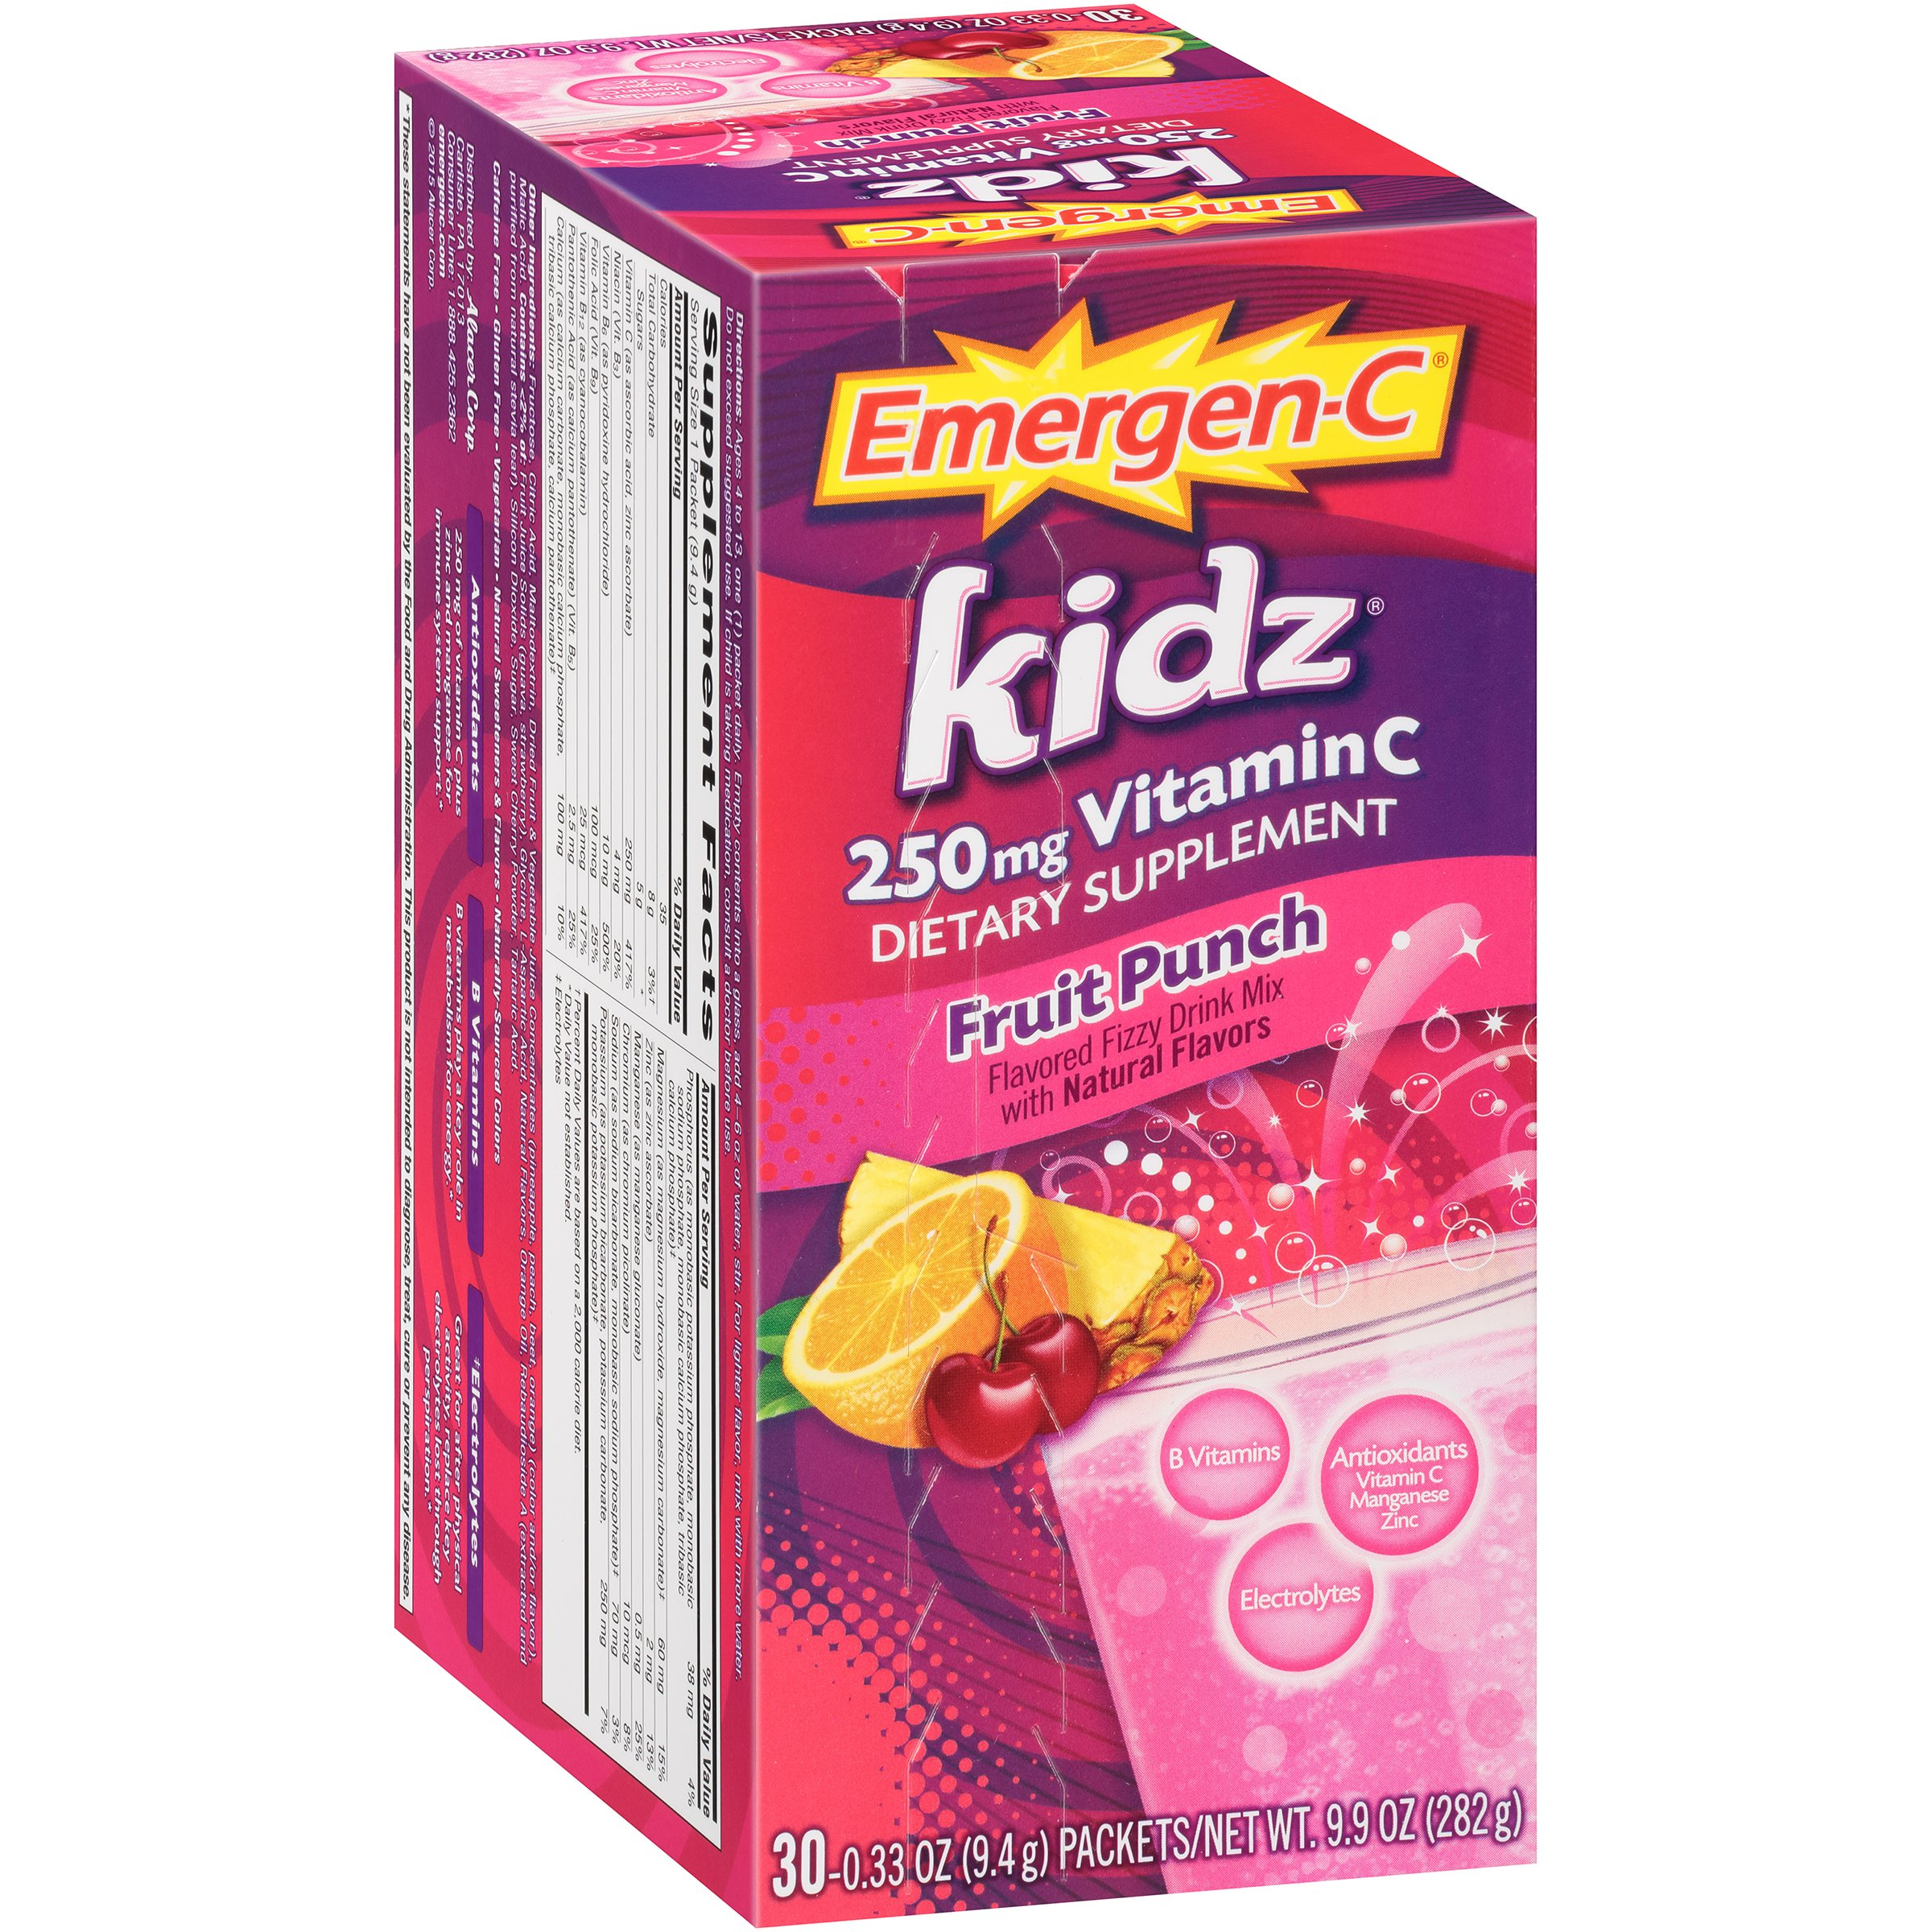 Emergen-C Kidz Dietary Supplement Drink Mix With 250mg Vitamin C, 0.33 Ounce Packets,... by Alacer Corp